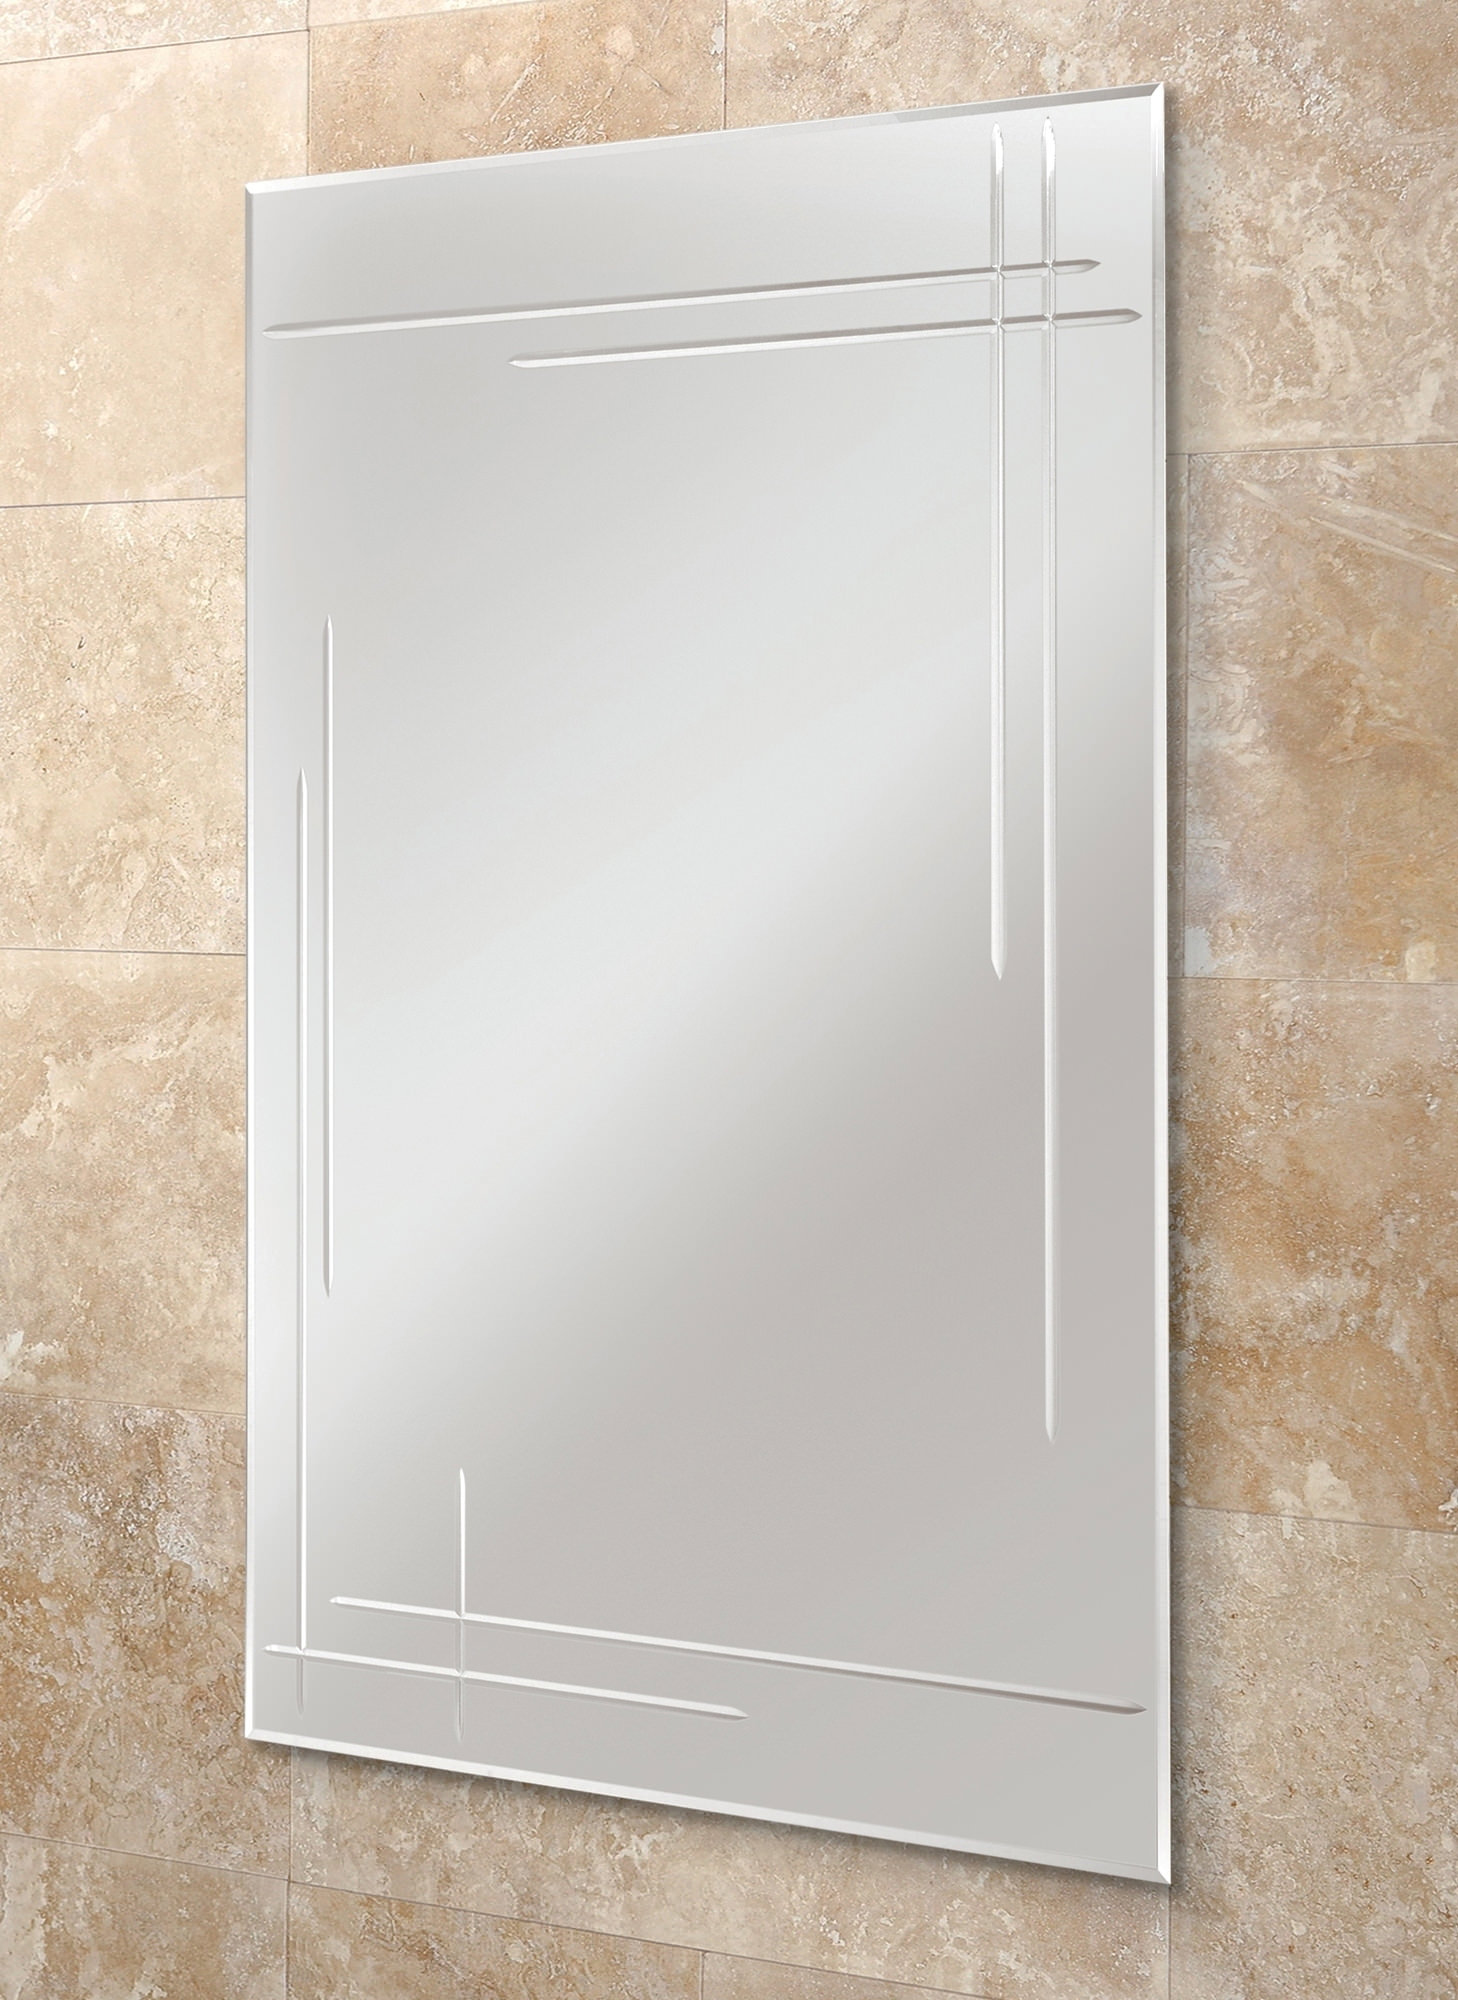 Hib Opus Rectangular Bevelled Edge Bathroom Mirror 500 X 700mm 61164595